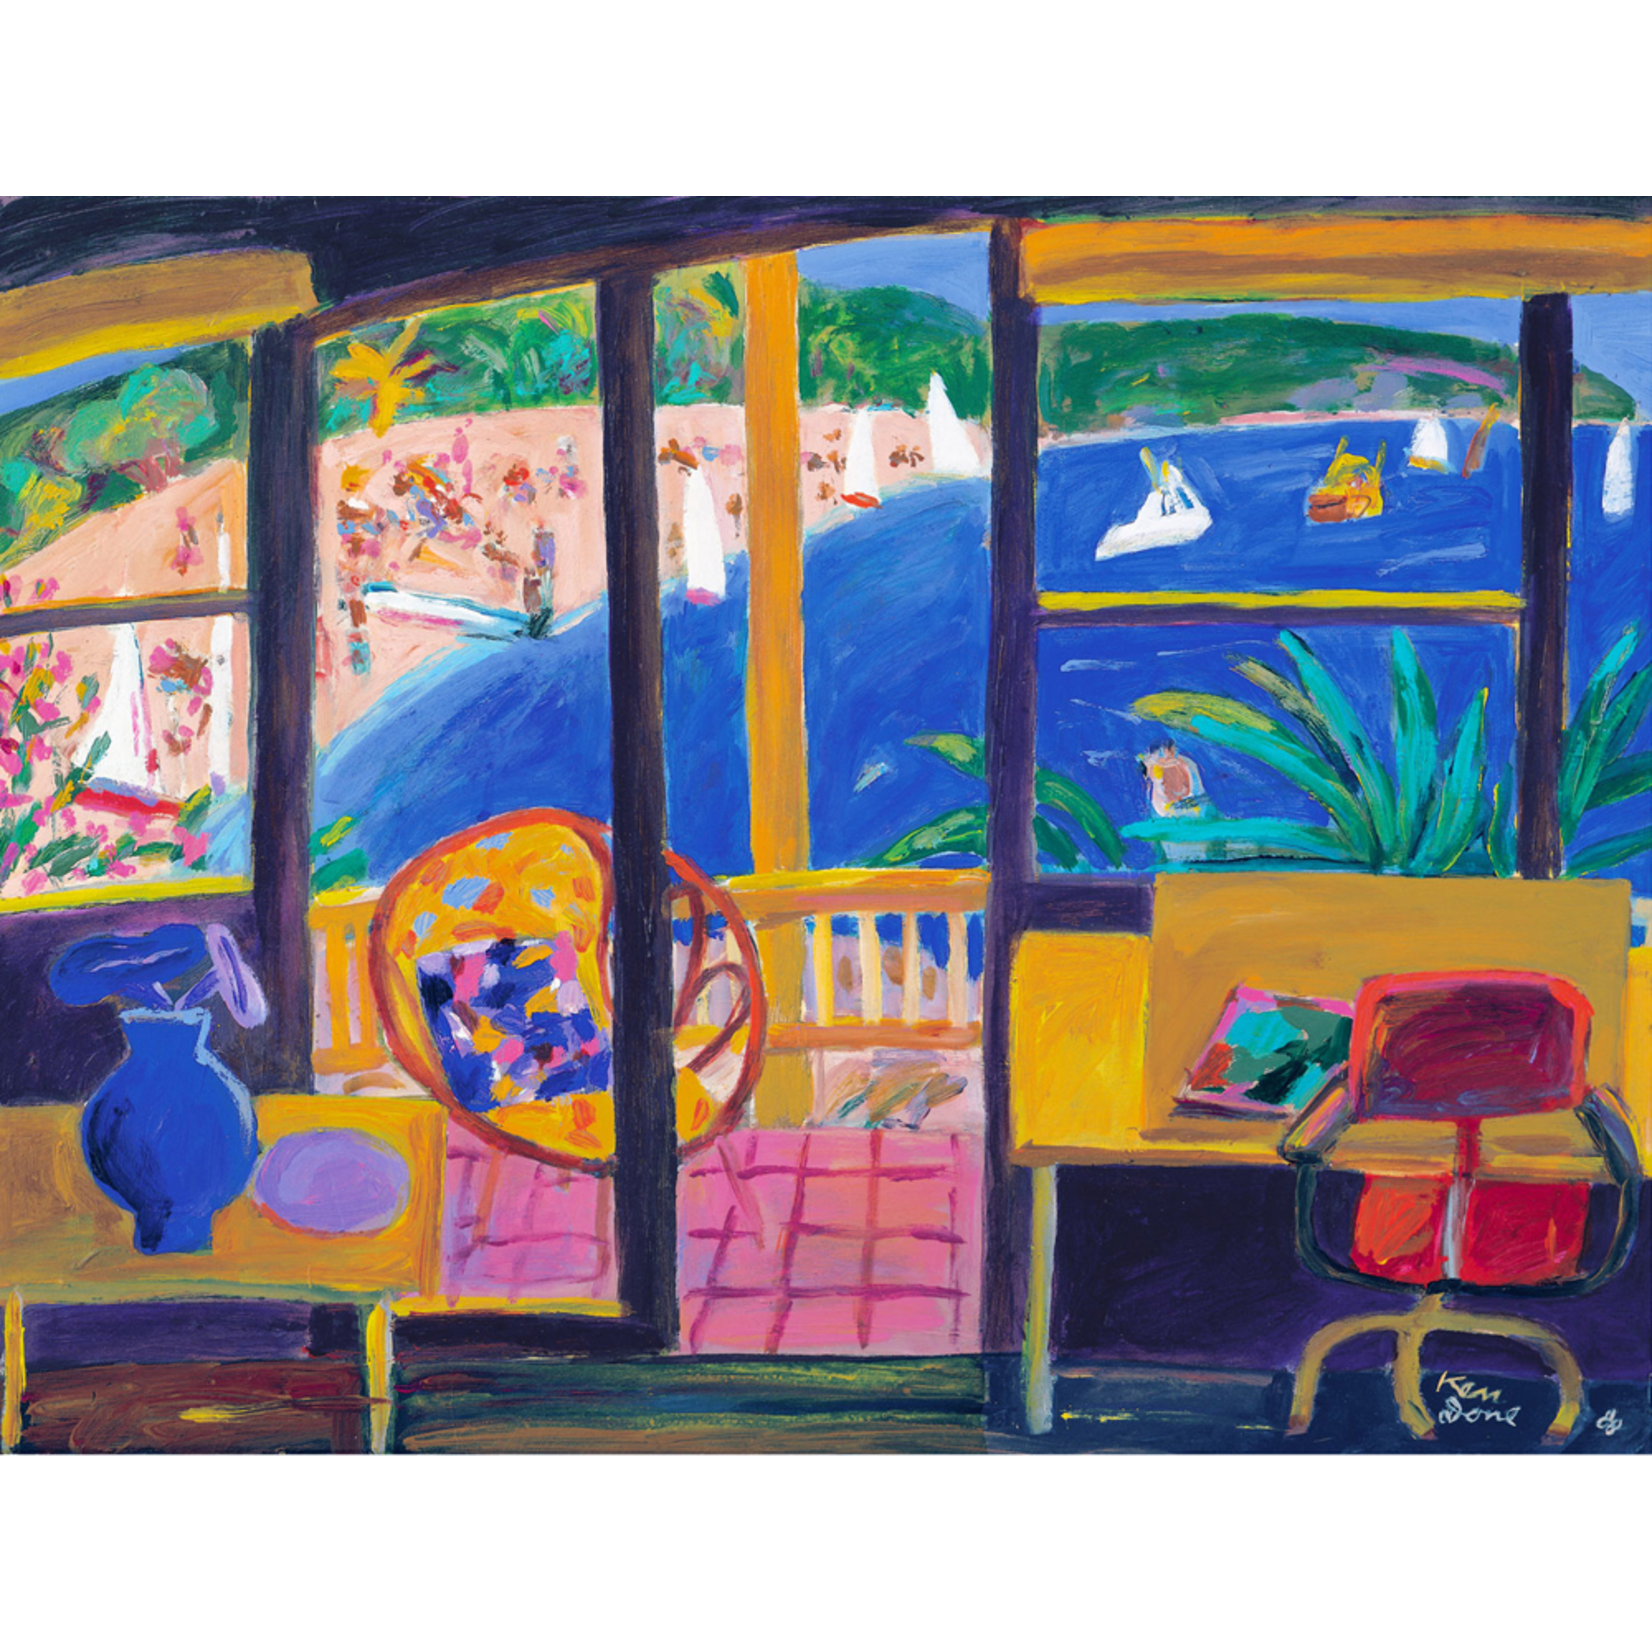 Limited Edition Prints From the Cabin, 1988